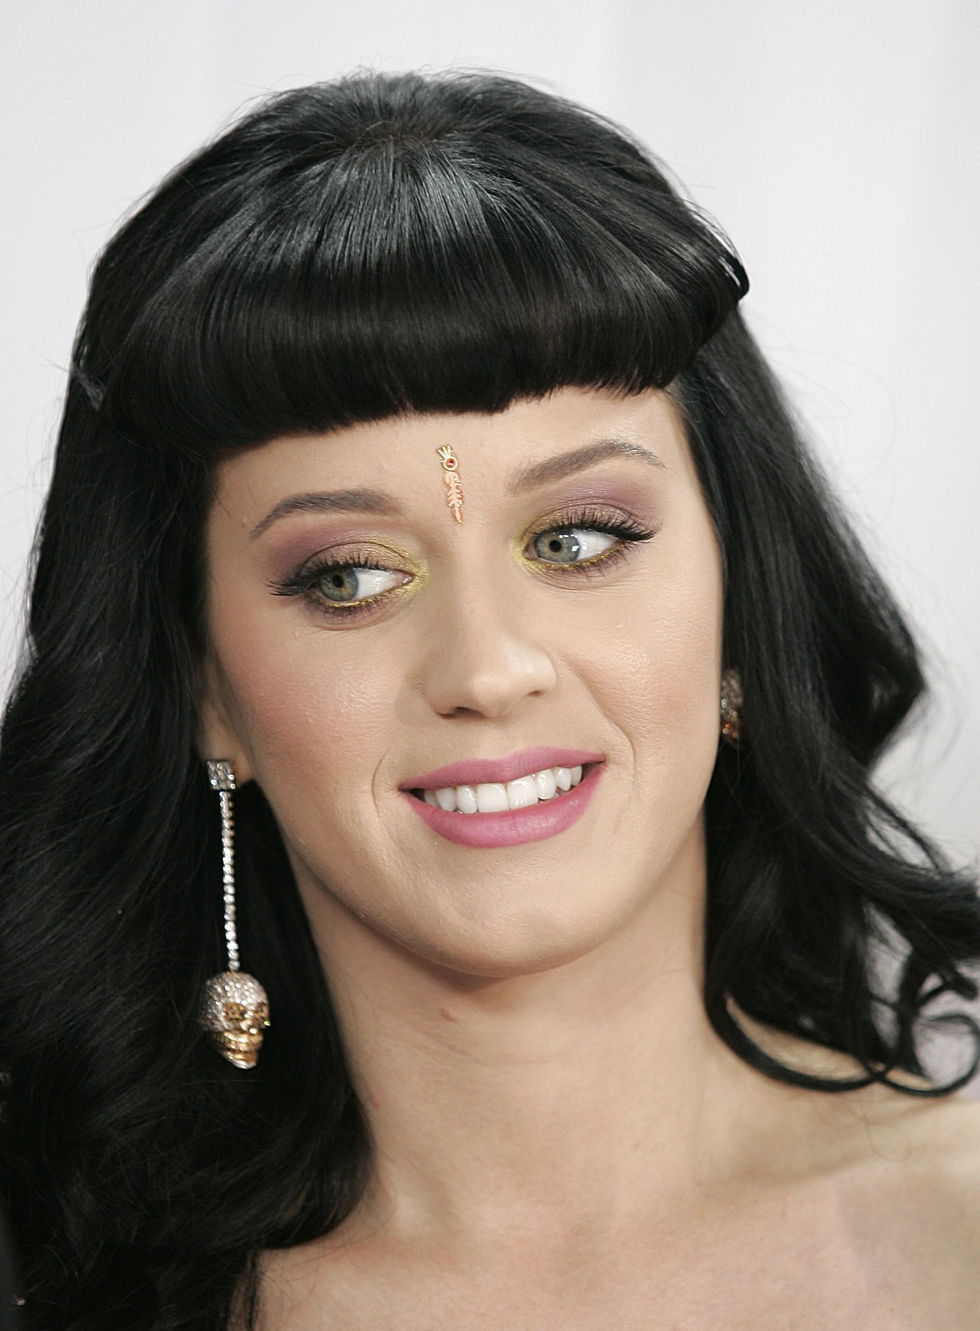 katy-perry-52nd-annual-grammy-awards-in-los-angeles-01